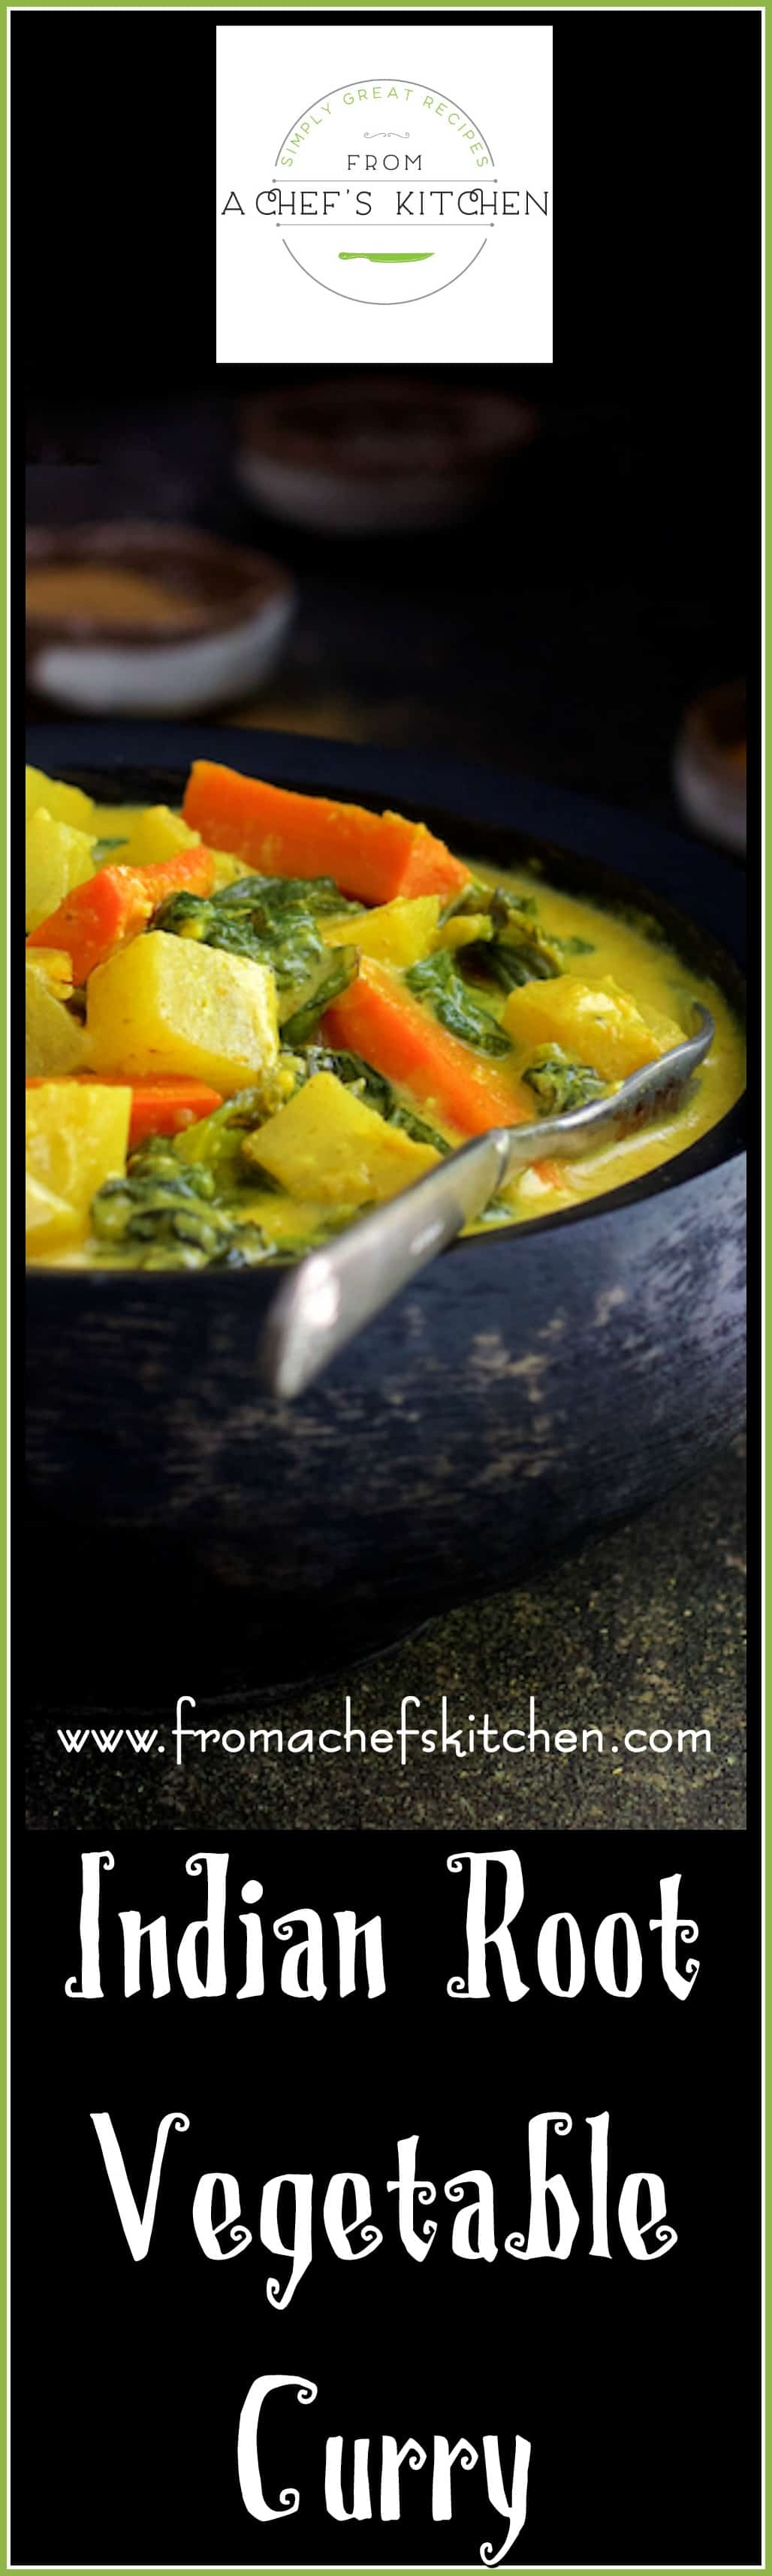 Indian Root Vegetable Curry is hearty and humble but over-the-top with flavor!  It's the perfect down-to-earth dinner.